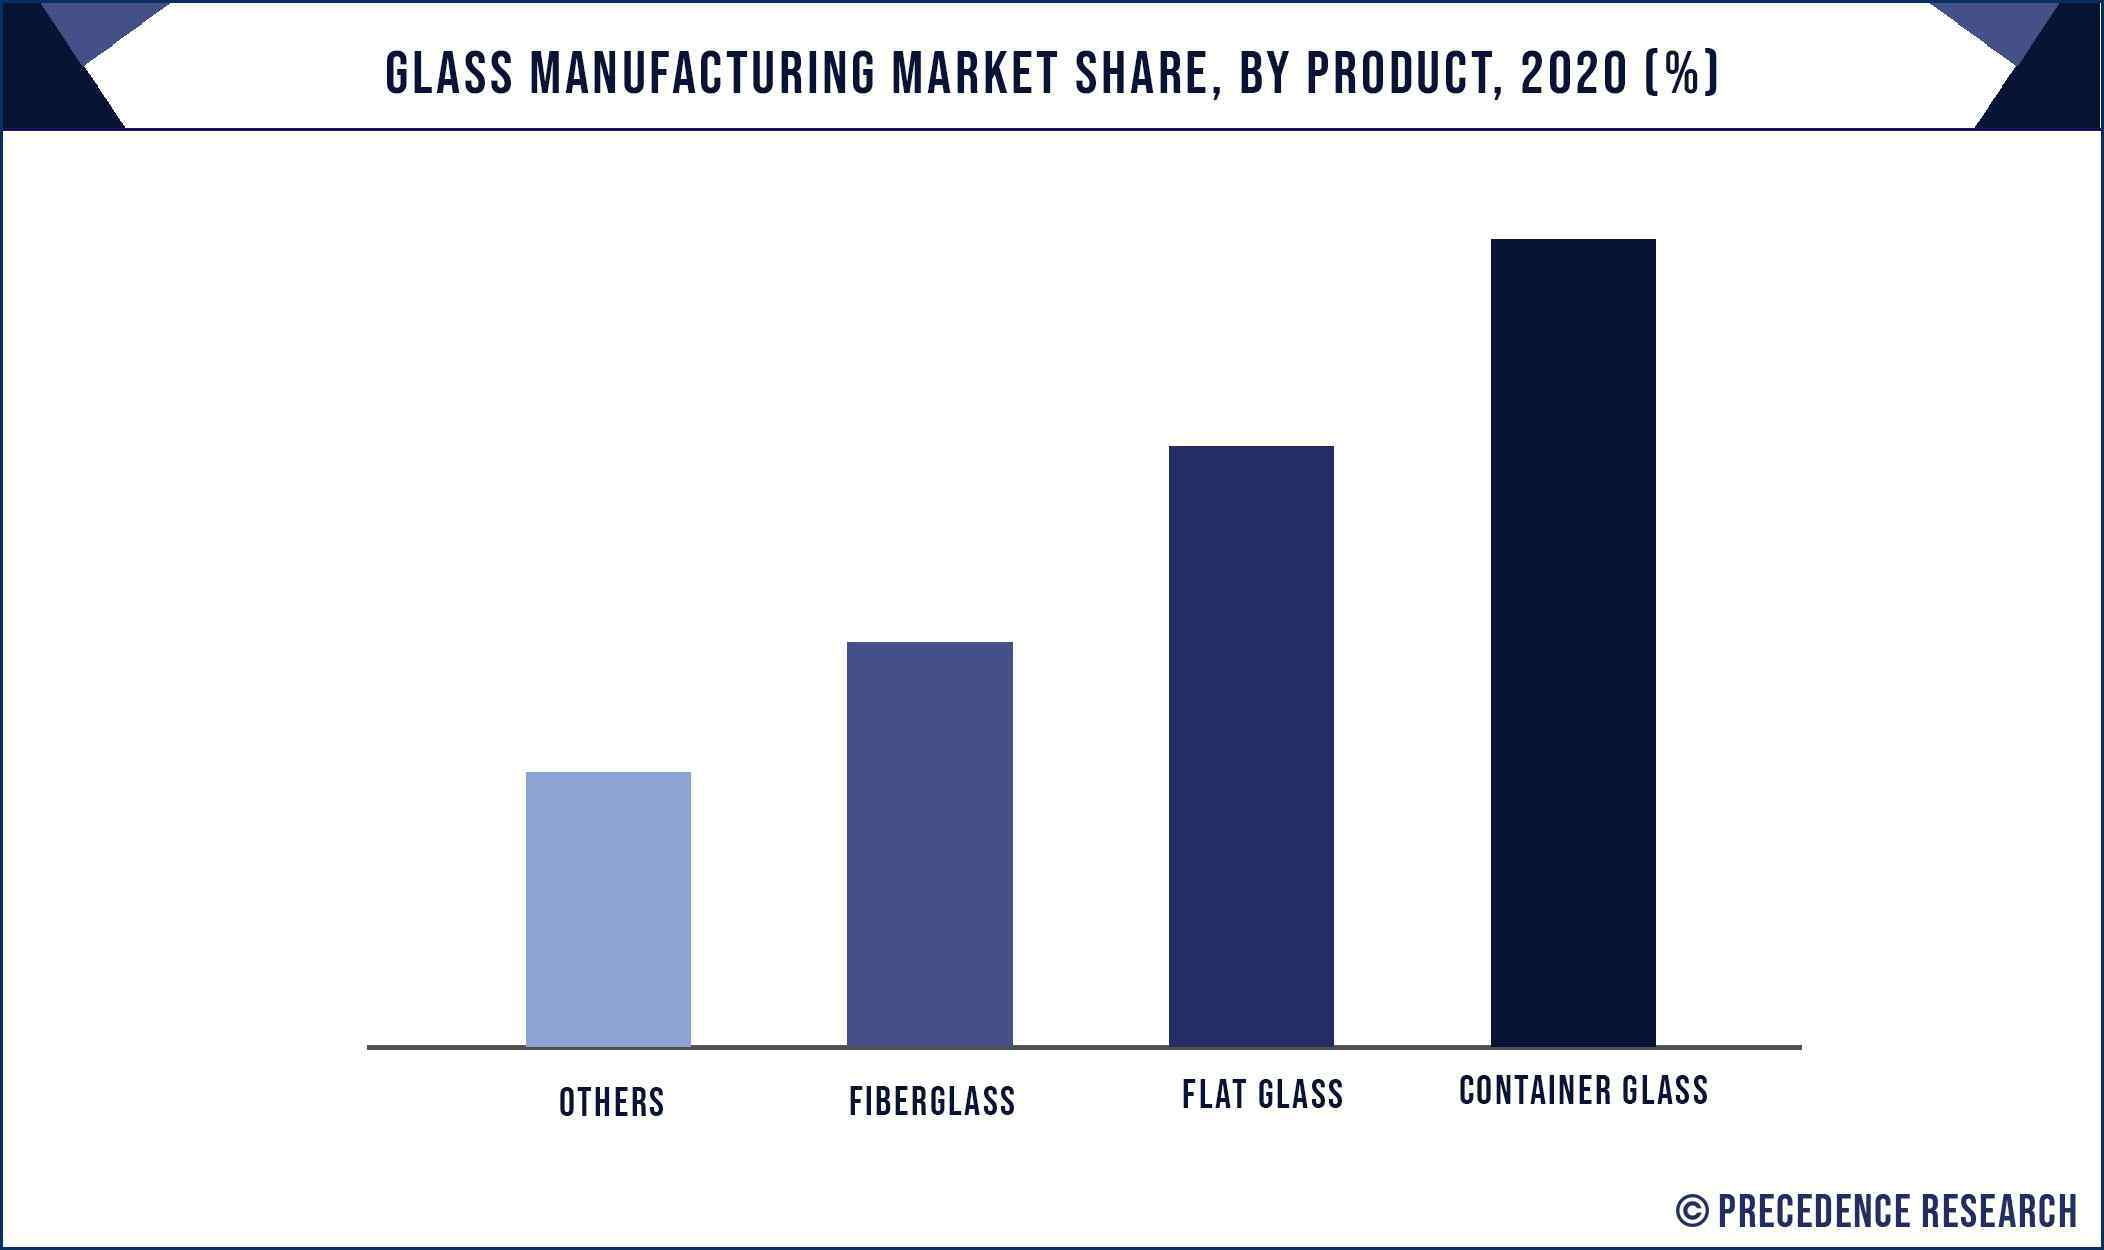 Glass Manufacturing Market Share, By Product, 2020 (%)